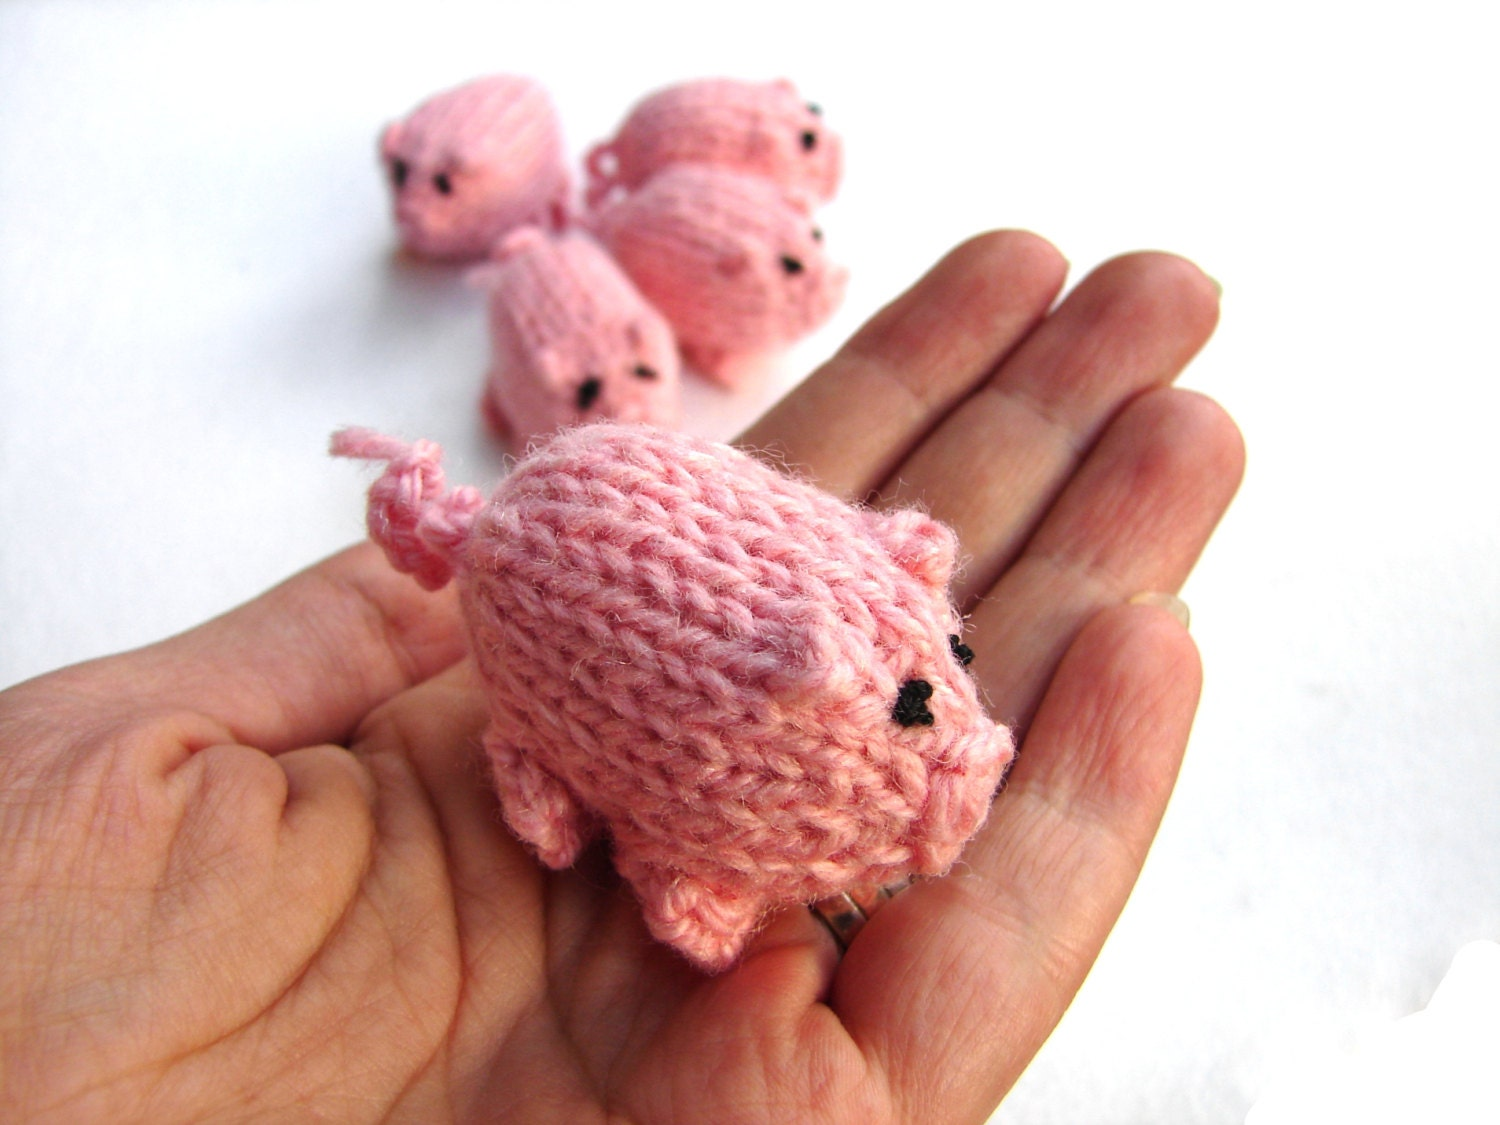 Pink piggy knitted baby toy, 3 little pigs stuffed toy - TinyOrchids